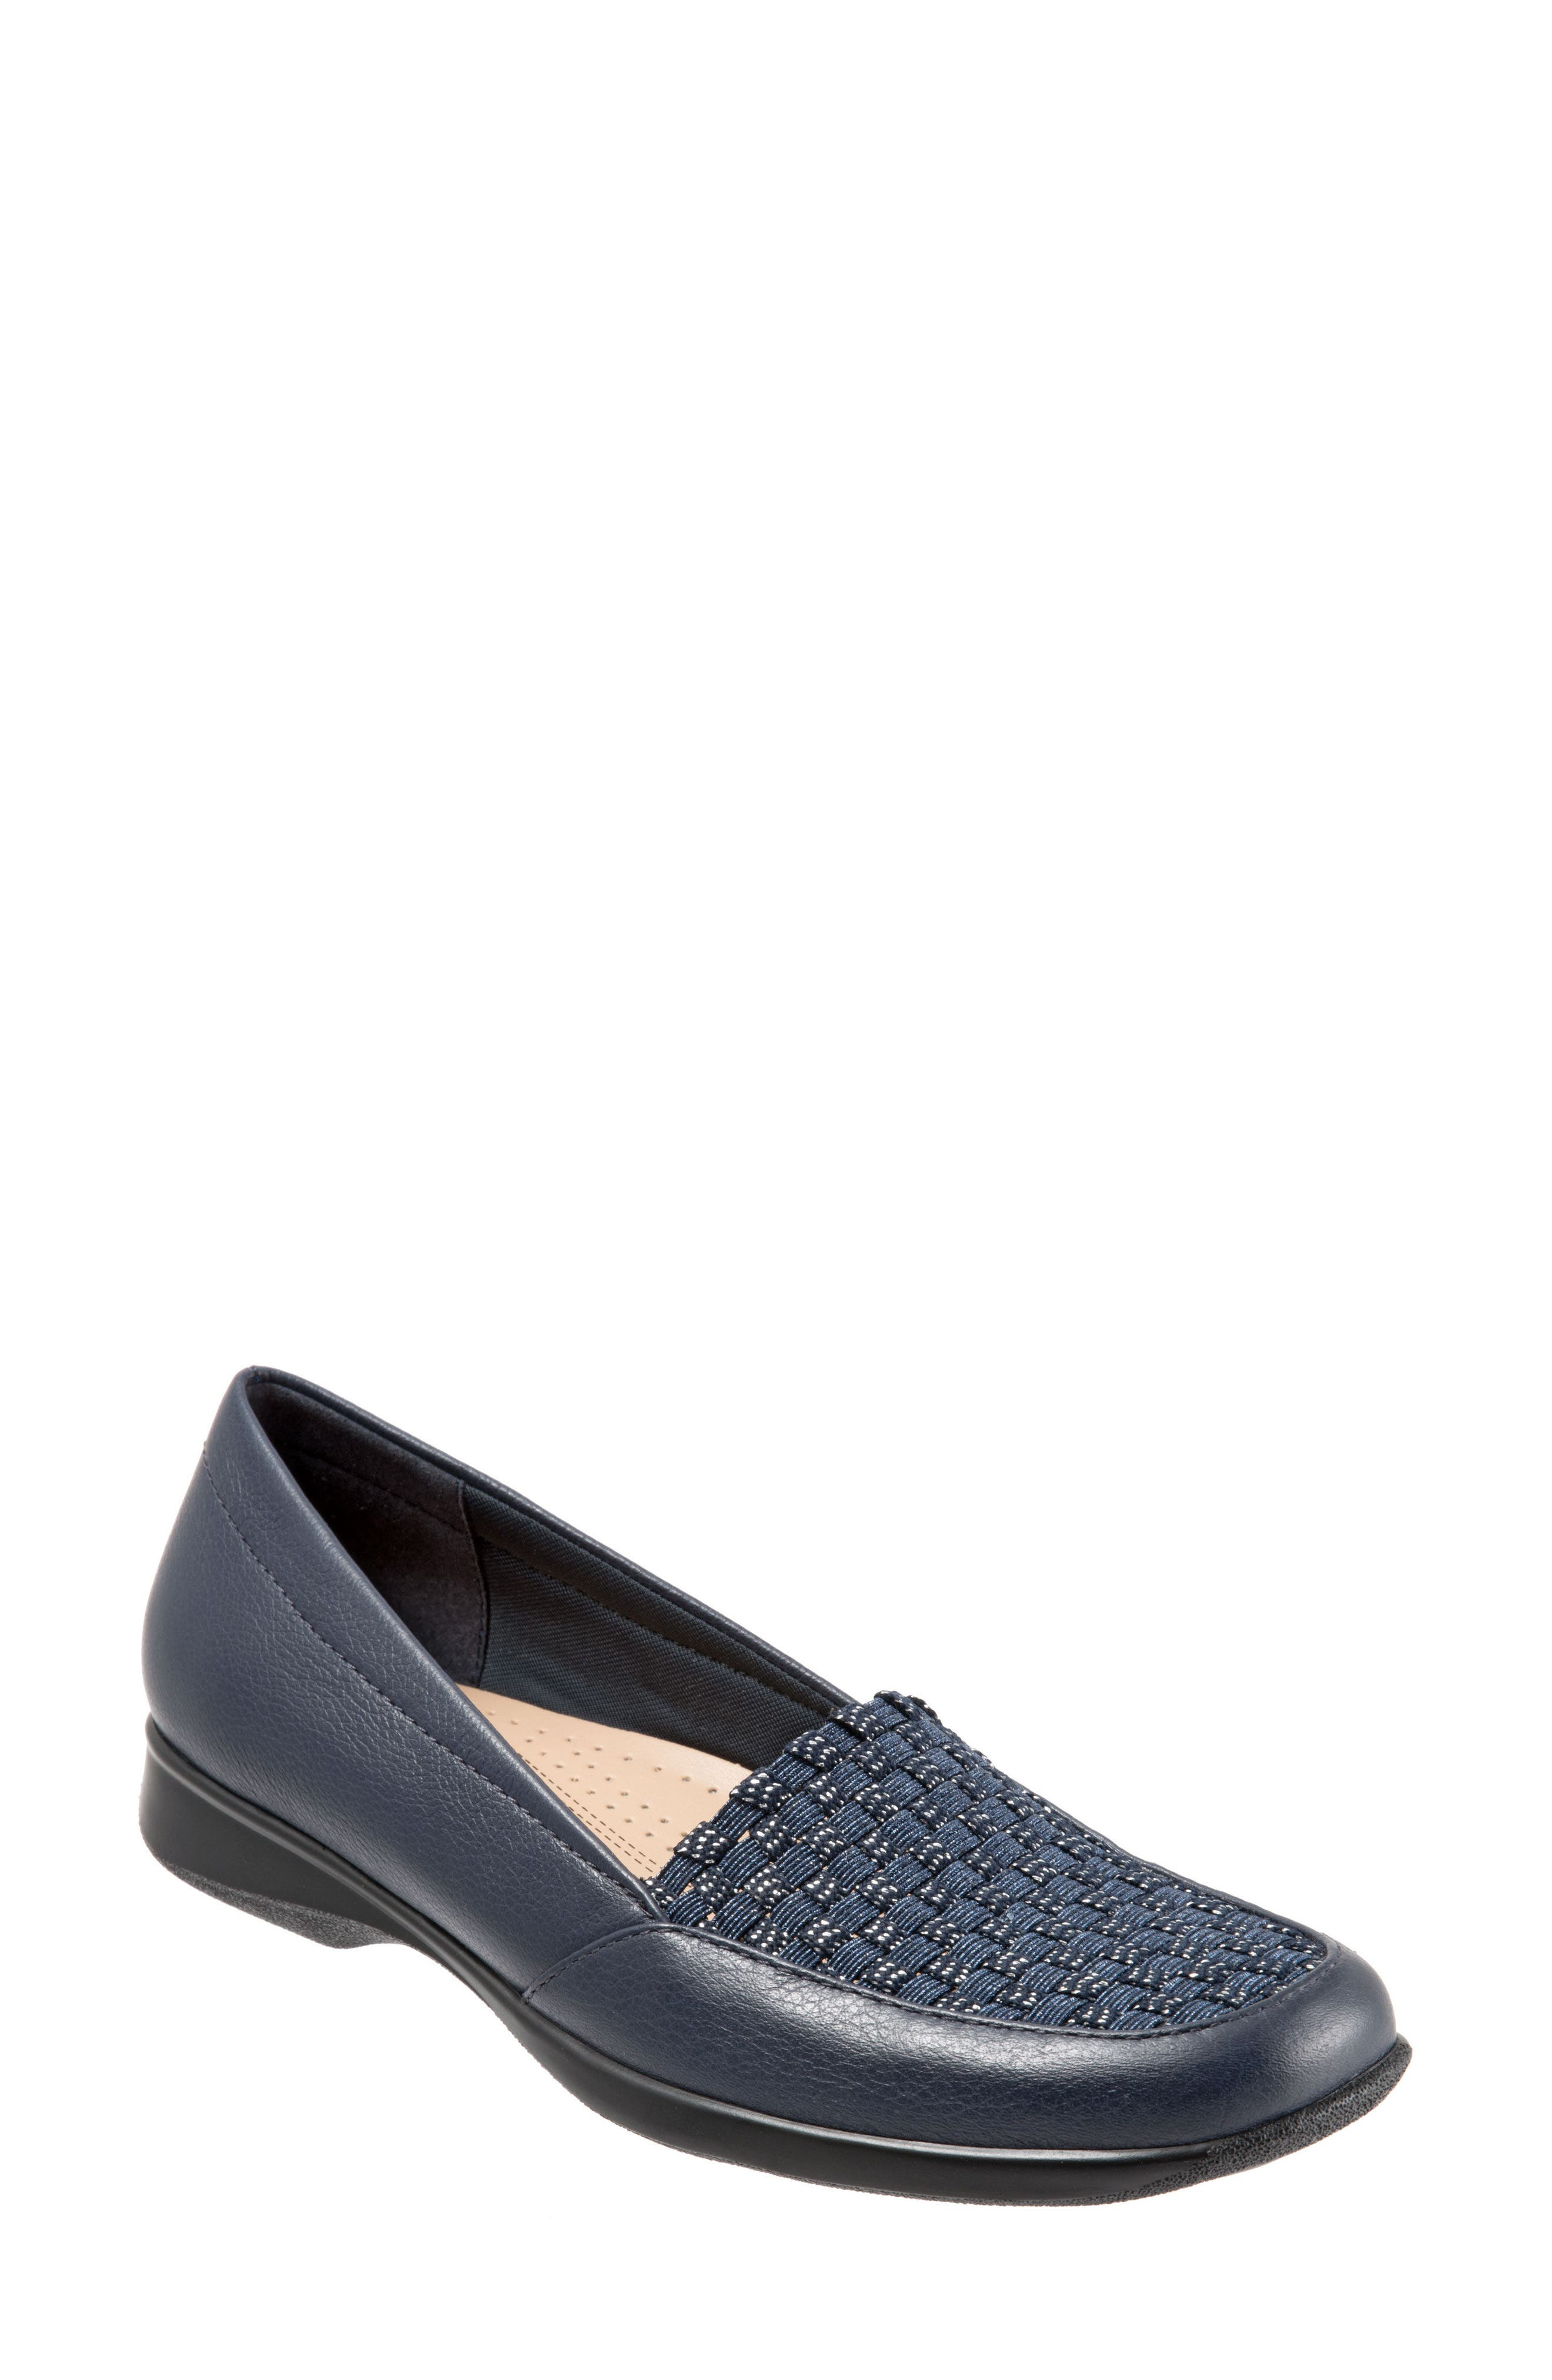 Jenkins Loafer Flat,                         Main,                         color, NAVY LEATHER